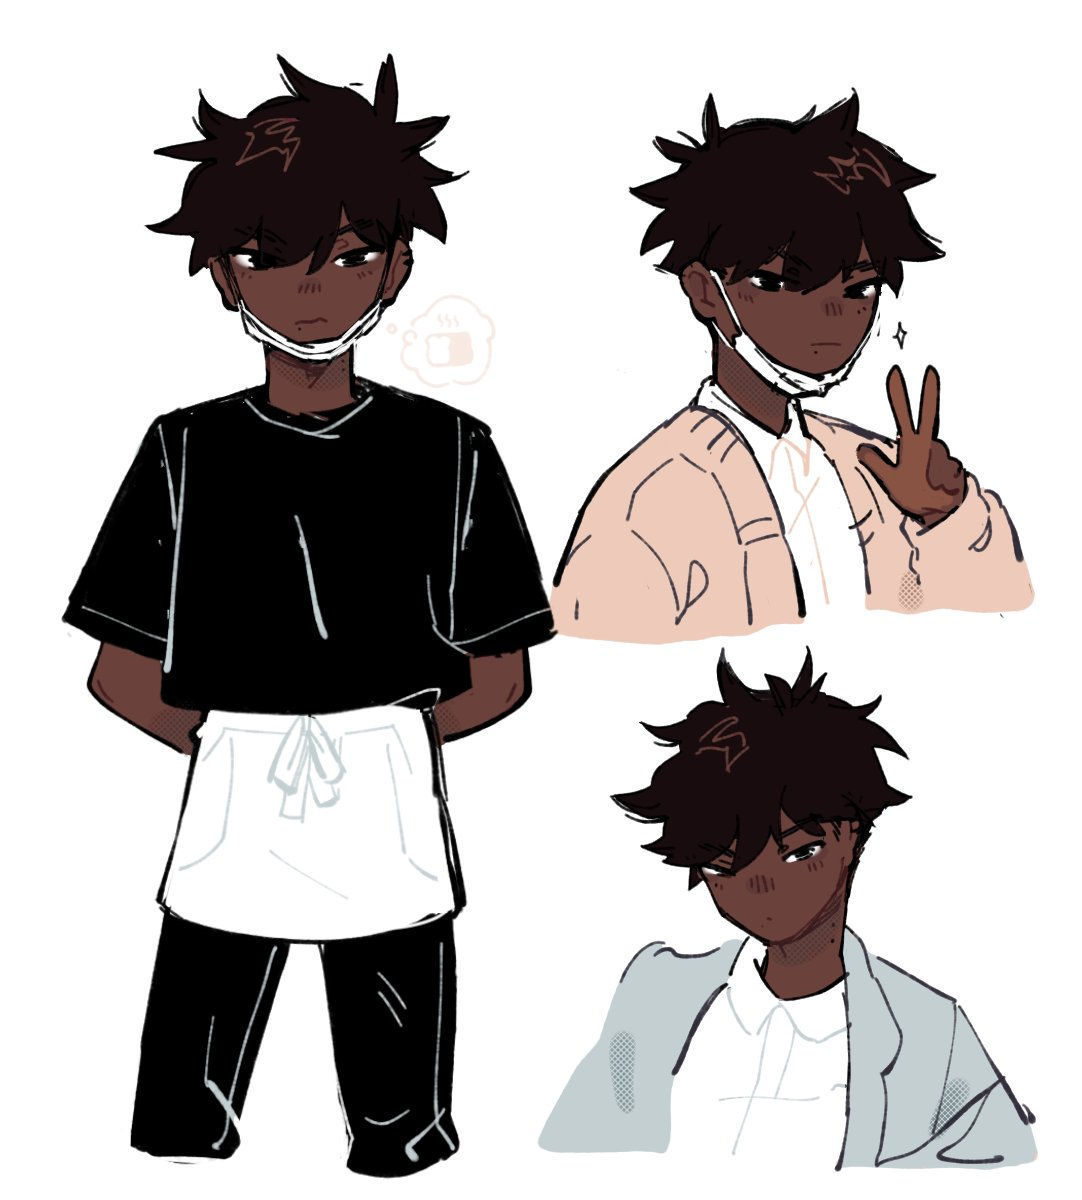 did a blind otp w @DEKlROS and this is my kid :')) his names brett and he works at a bakery bc he wants the reject breadpic.twitter.com/5fQy7wAEtJ